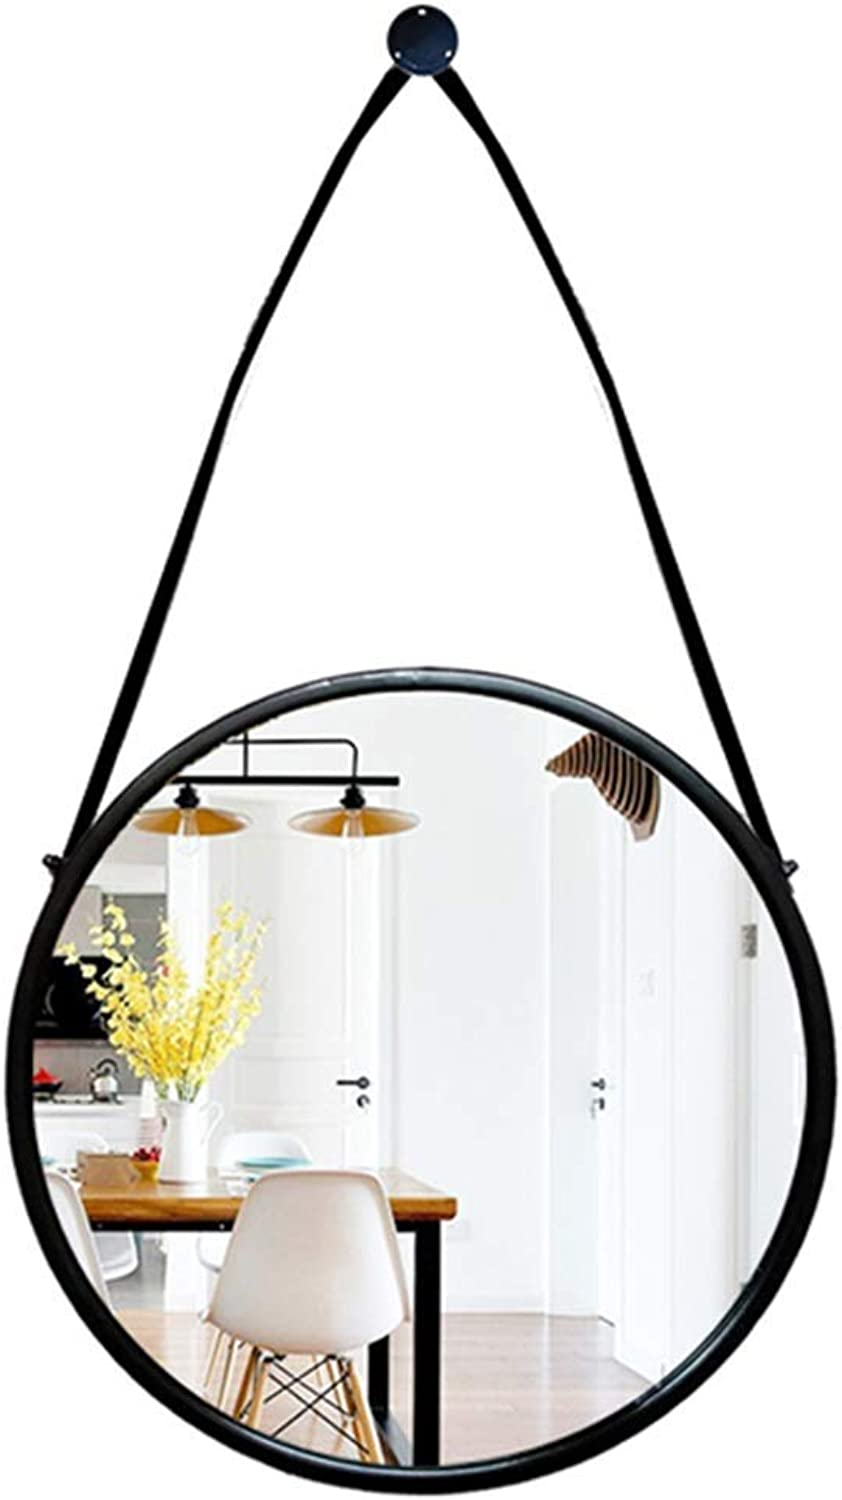 Hanging Mirror - Bathroom Wall Mirror - Bathroom Makeup Mirror Modern European Style Iron Frame with Hanging Chain Black